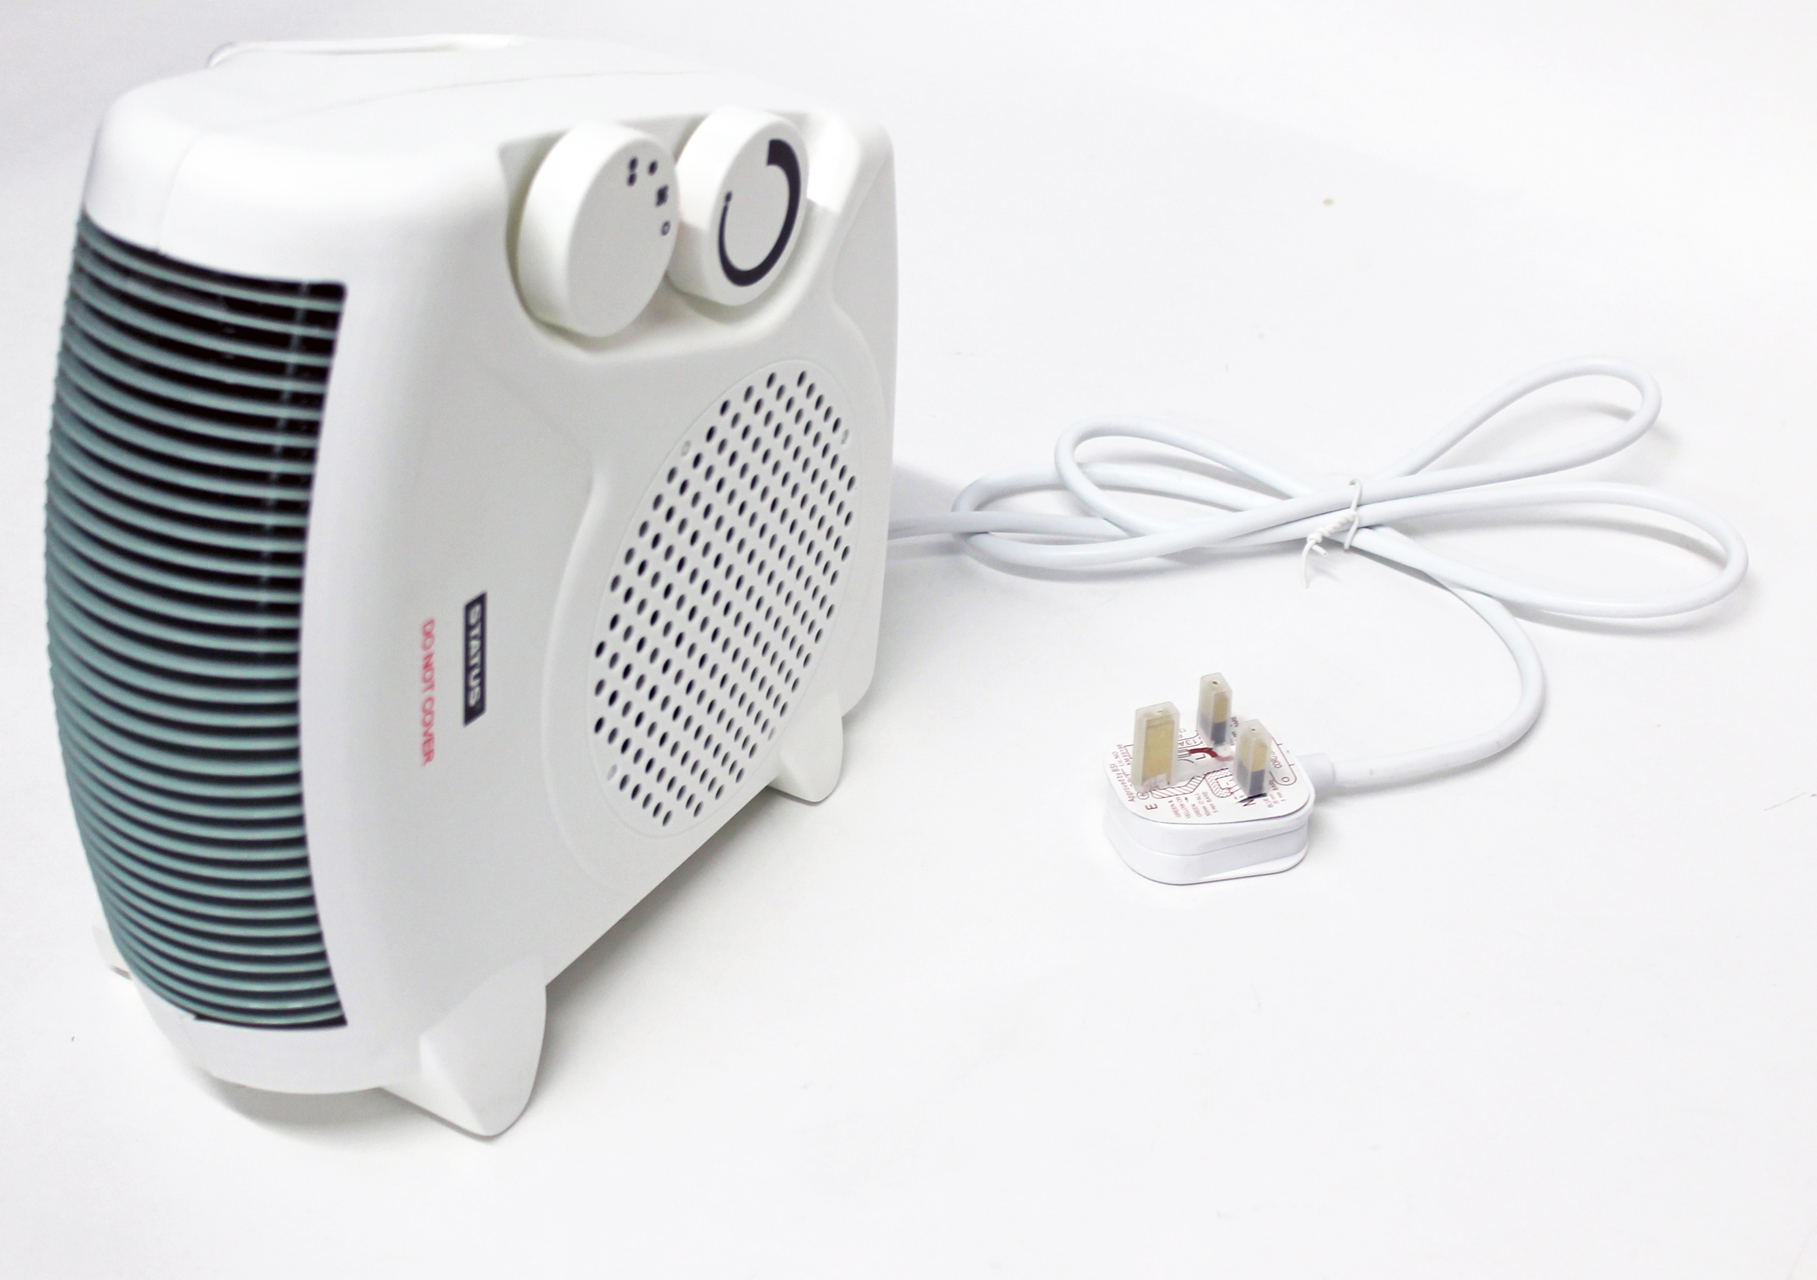 DUAL POSITION FAN HEATER 1000W / 2000W PORTABLE